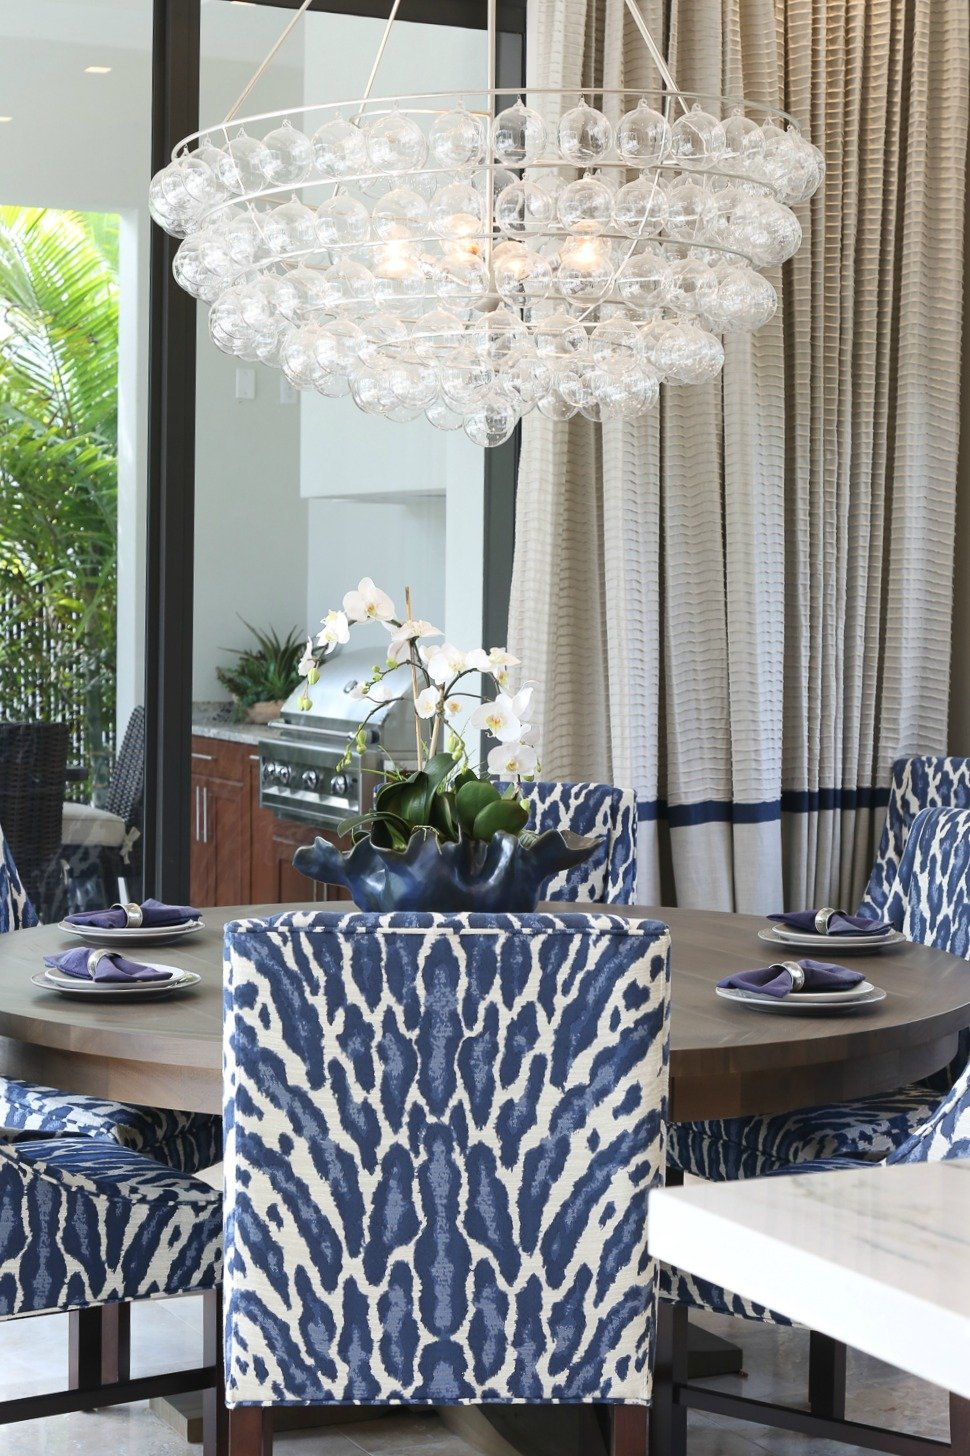 Navy animal print kitchen chair fabric.